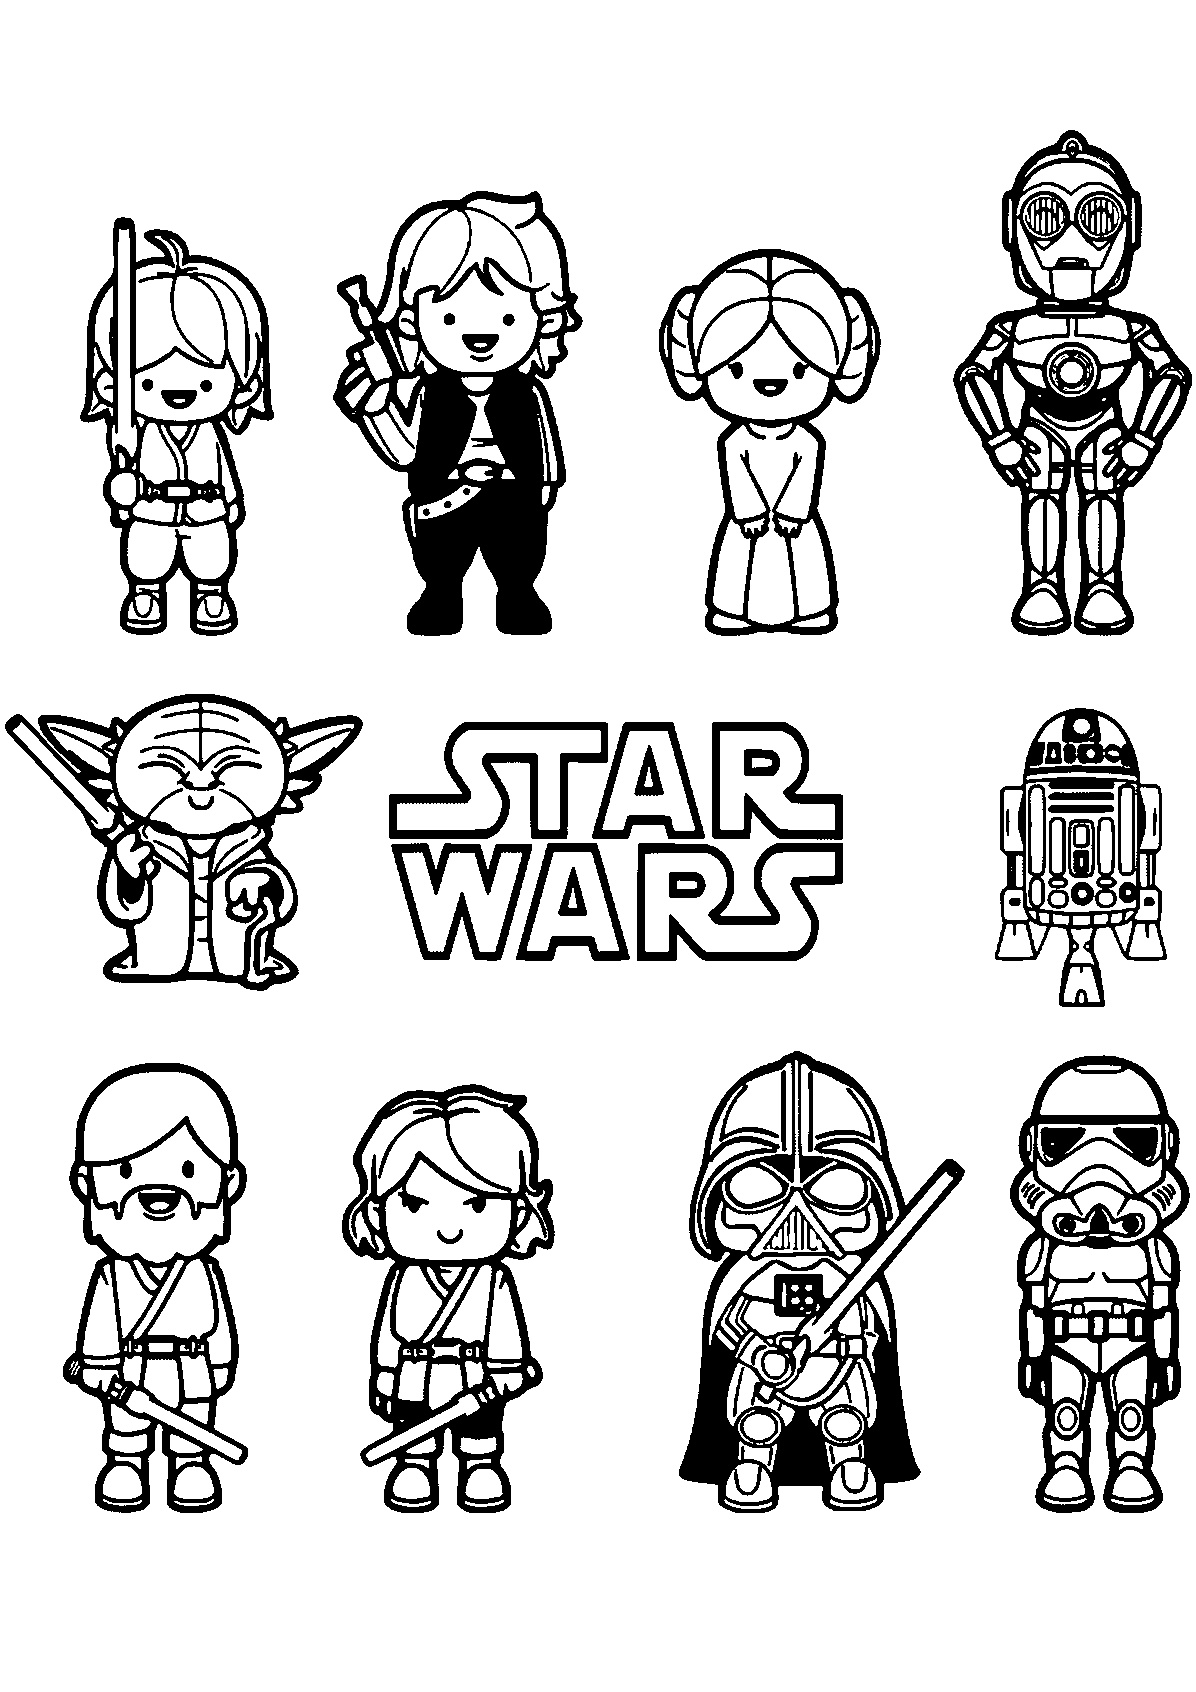 Cute Looking Star Wars Coloring Pages All Characters Easy Star Wars Coloring